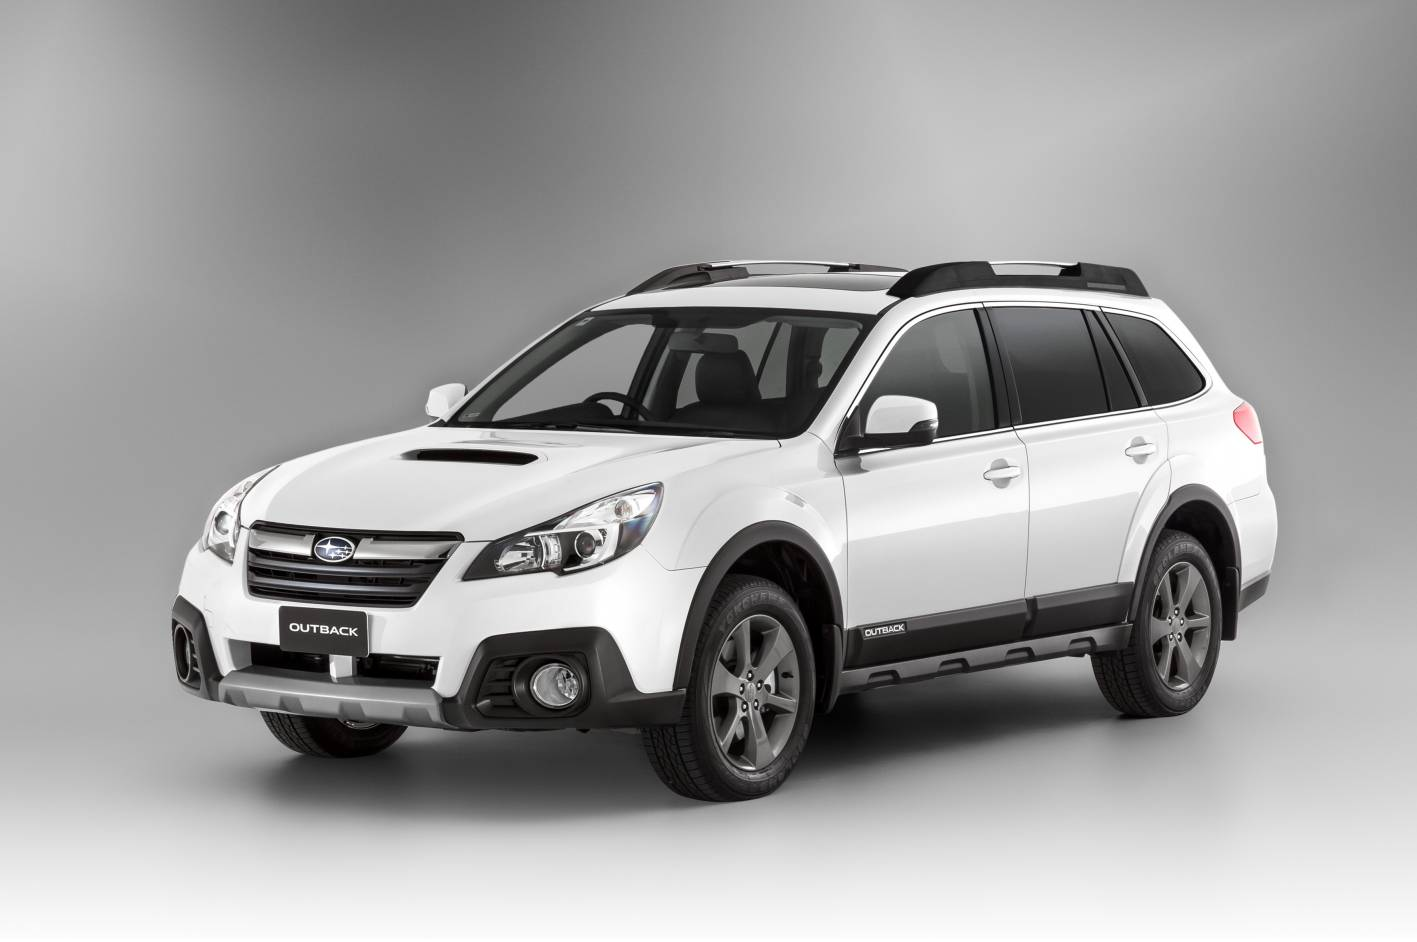 2014 subaru outback on sale in australia 2000 added value rh  performancedrive com au 2013 subaru outback 3.6r limited owners manual 2013 subaru  outback 3.6r ...